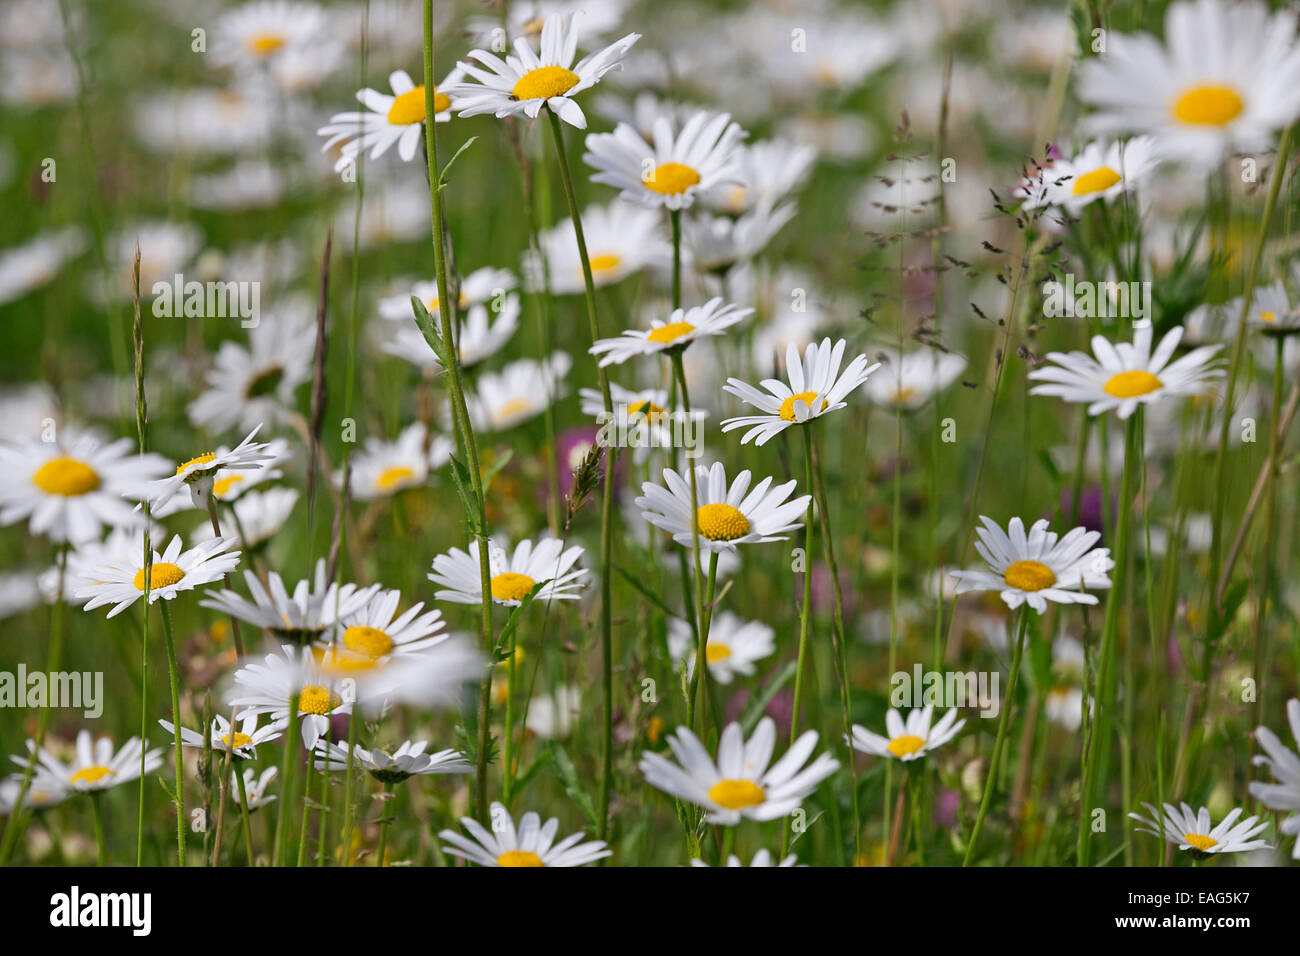 Ox eye daisies / oxeye daisy (Leucanthemum vulgare / Chrysanthemum leucanthemum) in flower in meadow Stock Photo